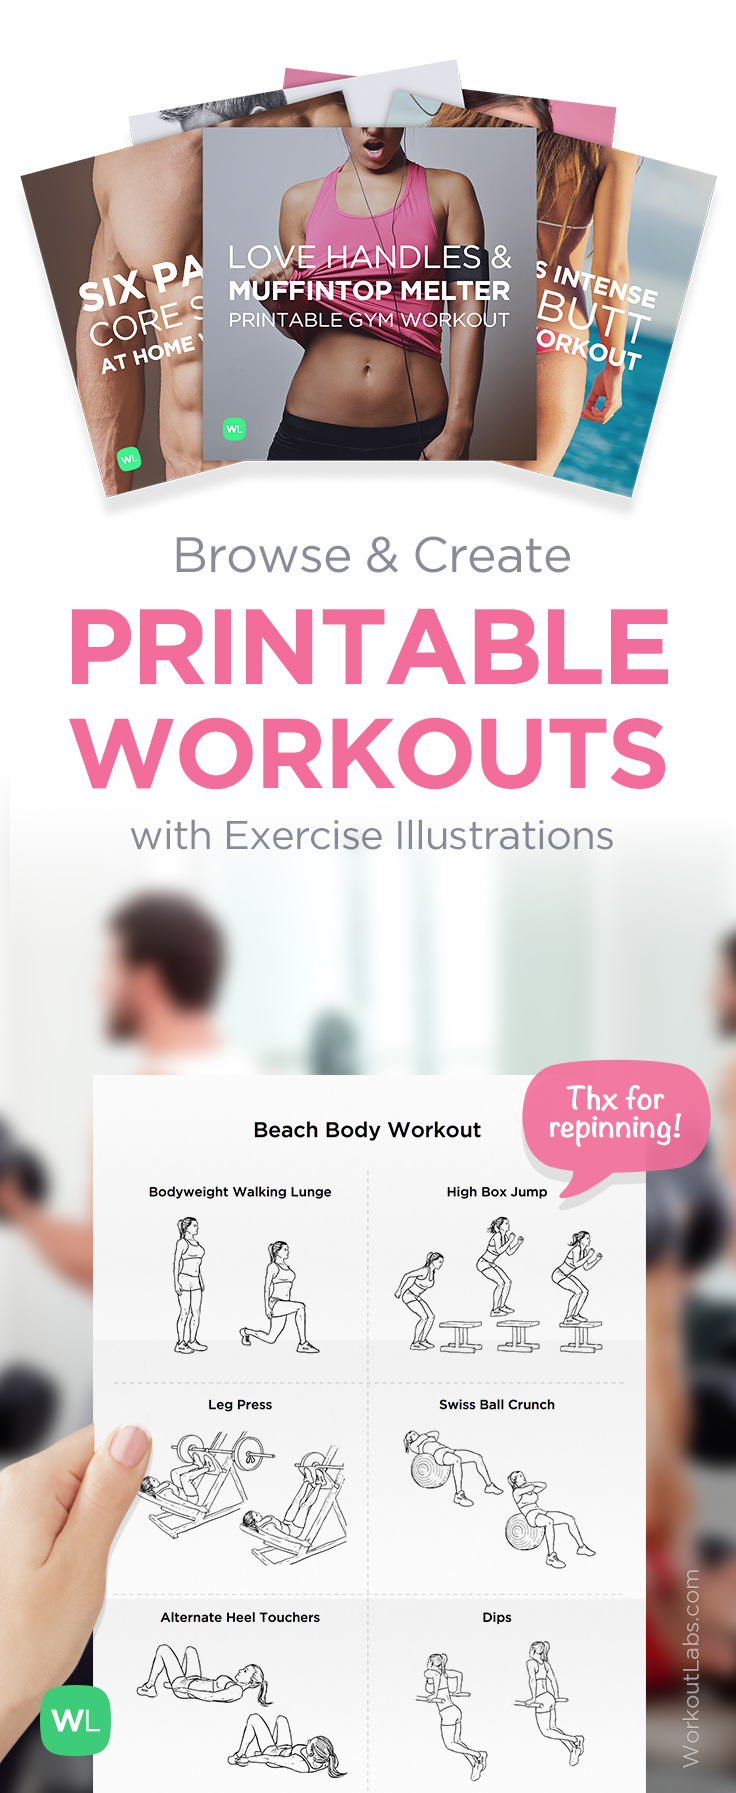 Download and create free illustrated workouts at https://workoutlabs.com